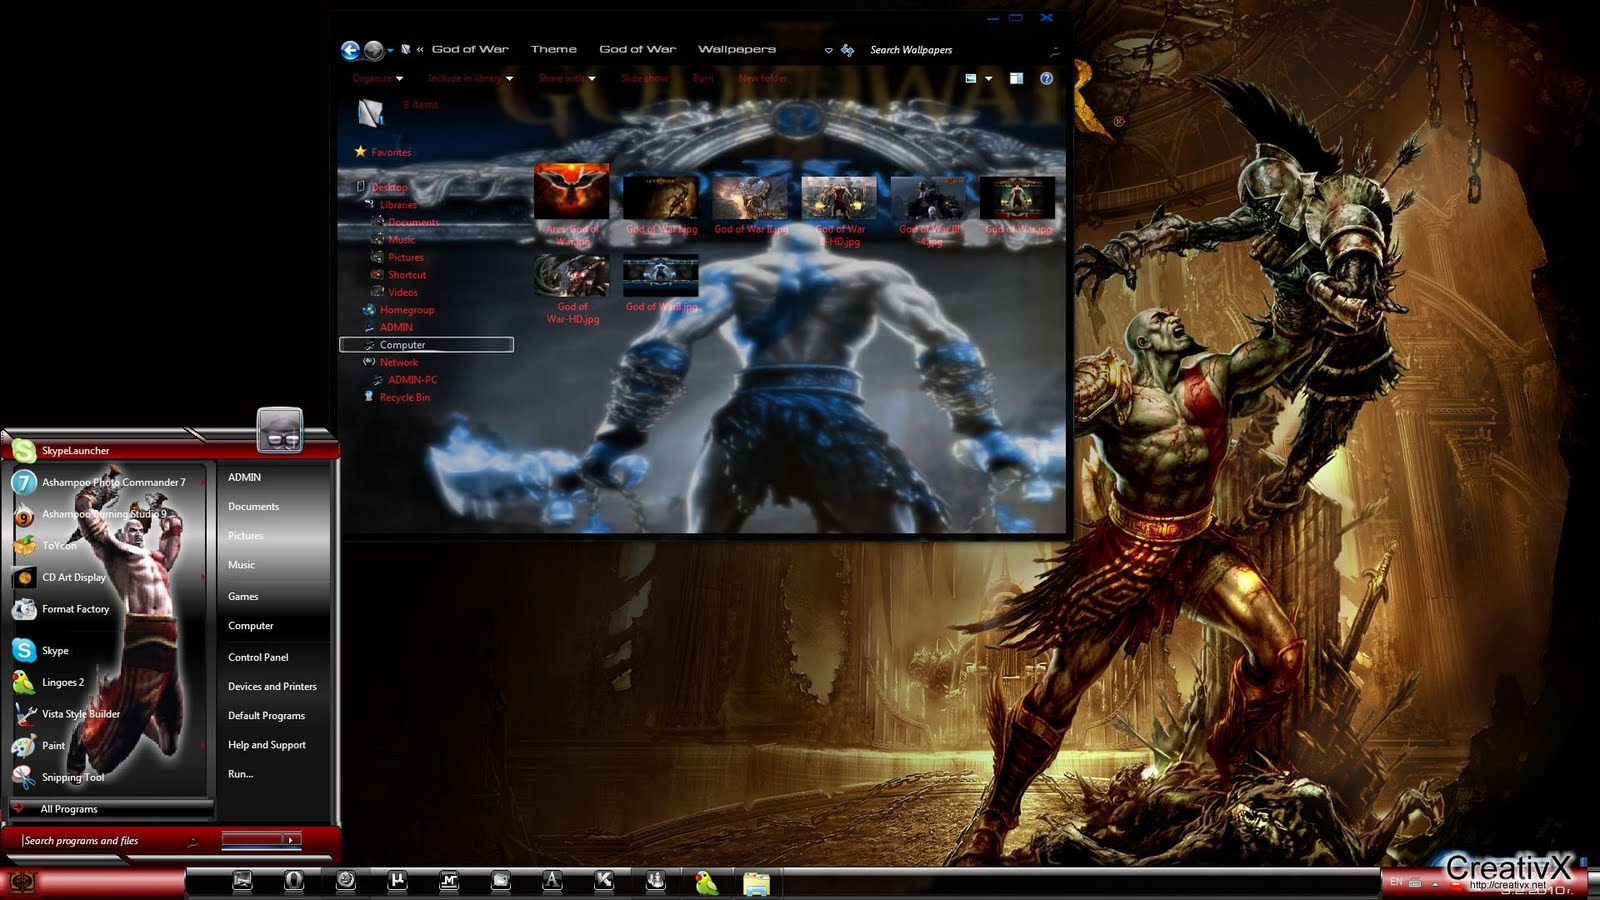 All themes for windows 7: God of War - theme for windows 7